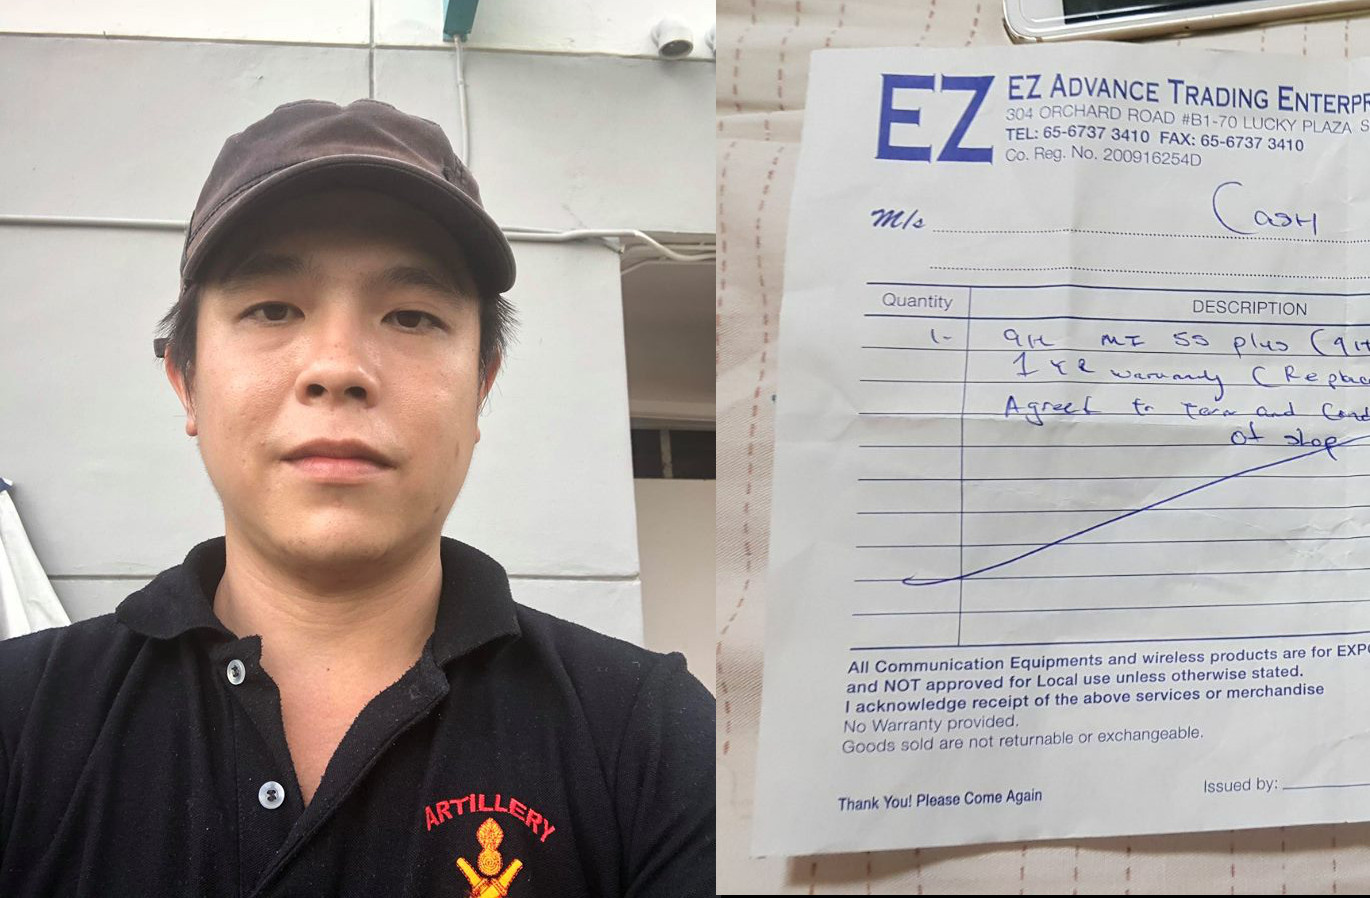 How does the latest alleged Lucky Plaza scam measure up to Jover Chew's legacy? - Alvinology